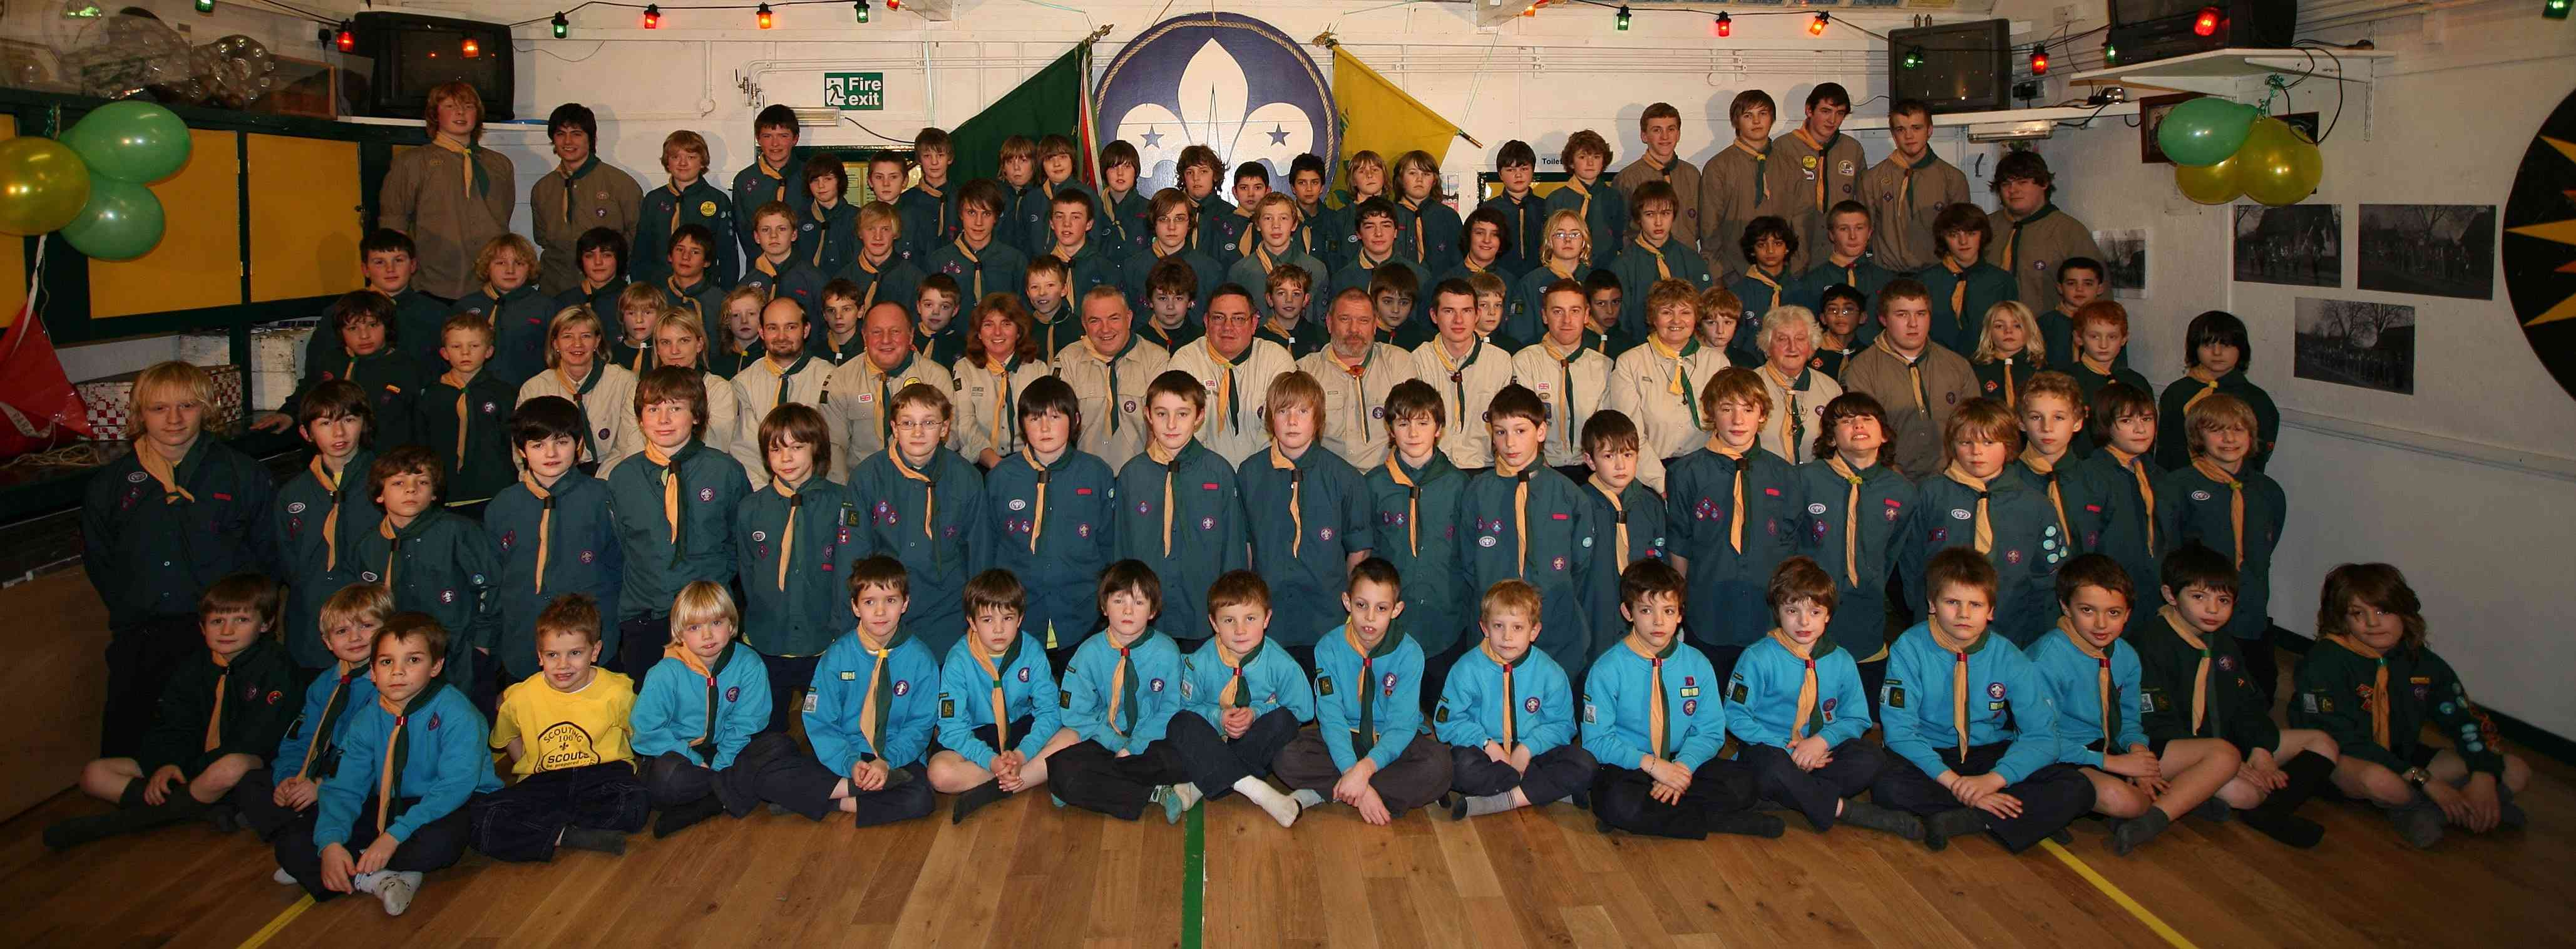 Pinkneys Green Scout